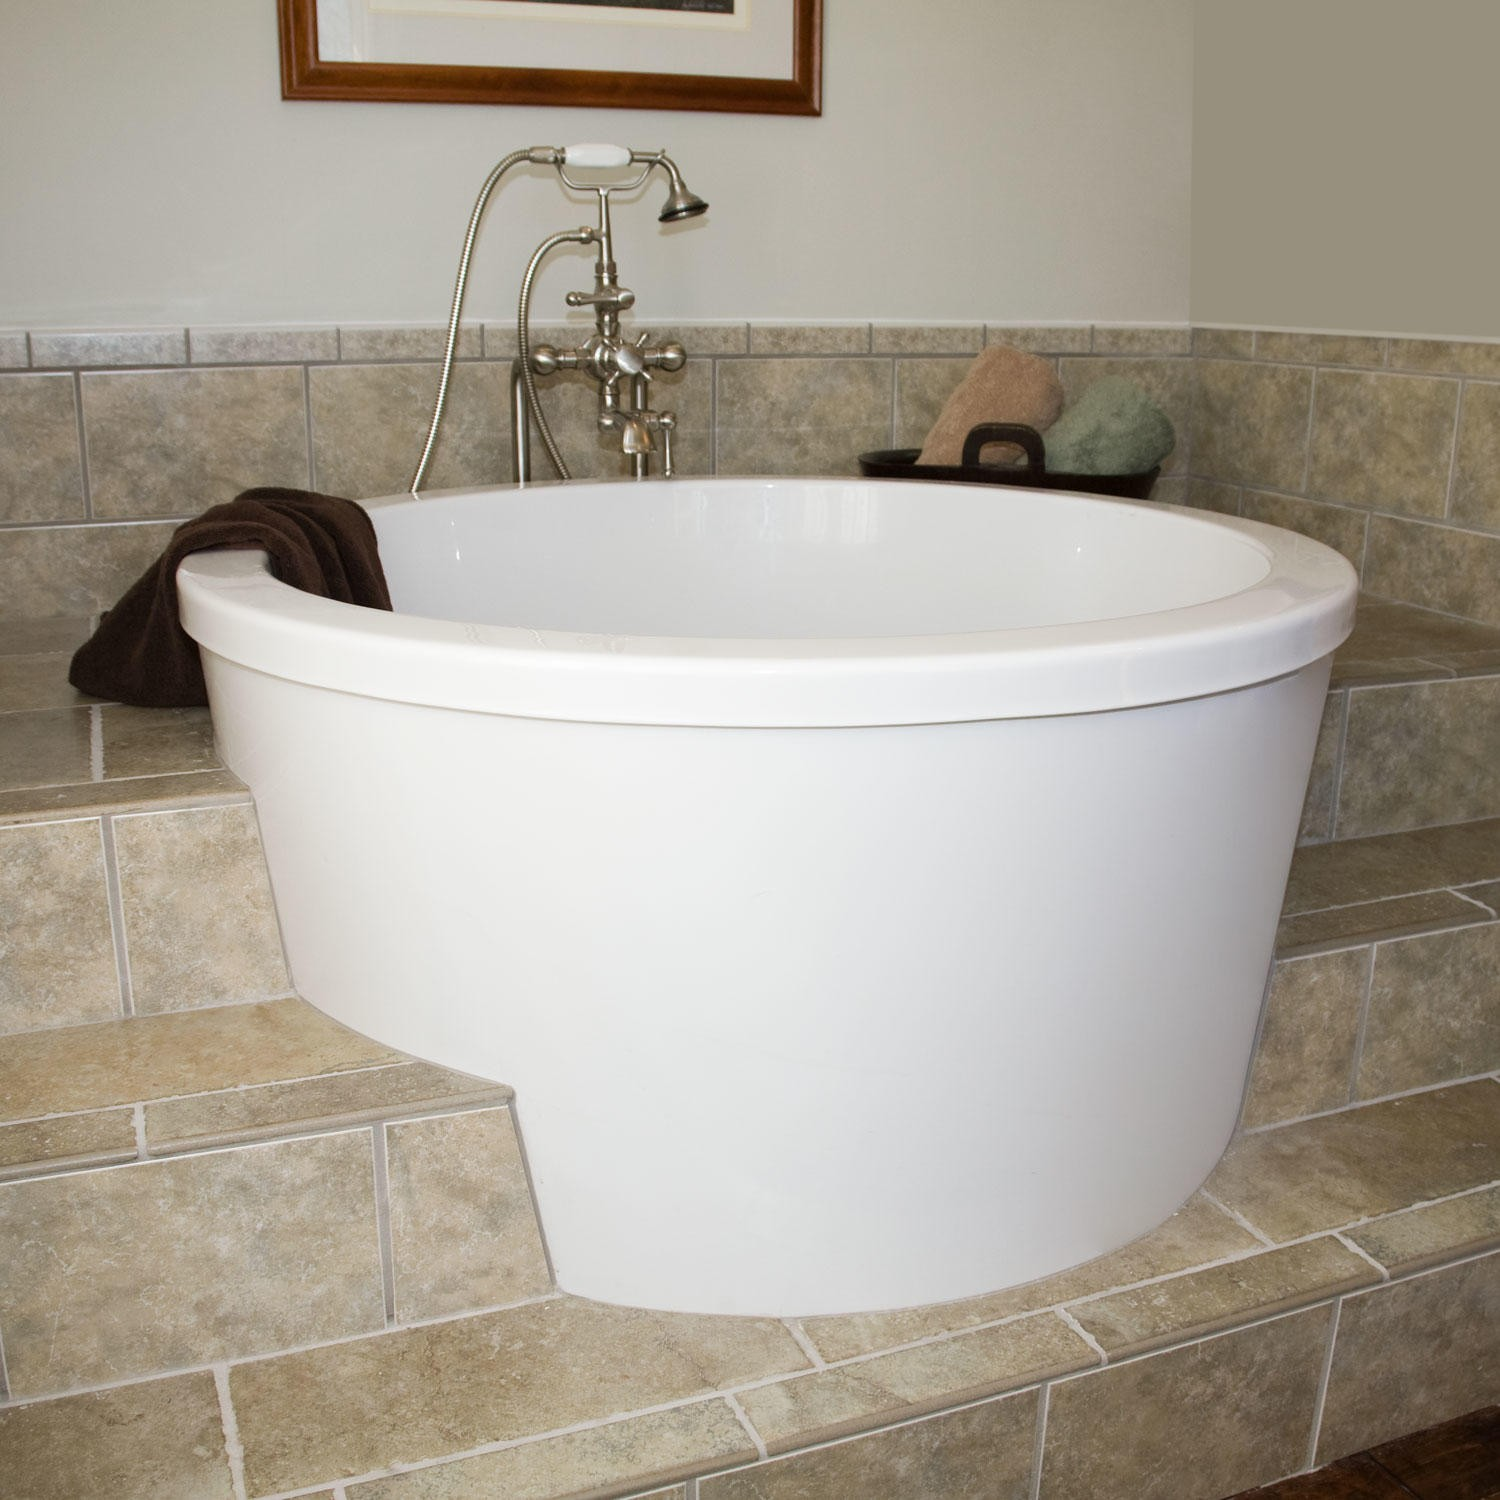 Small soaker tub ideas square japanese soaking tub small Smallest bath tub